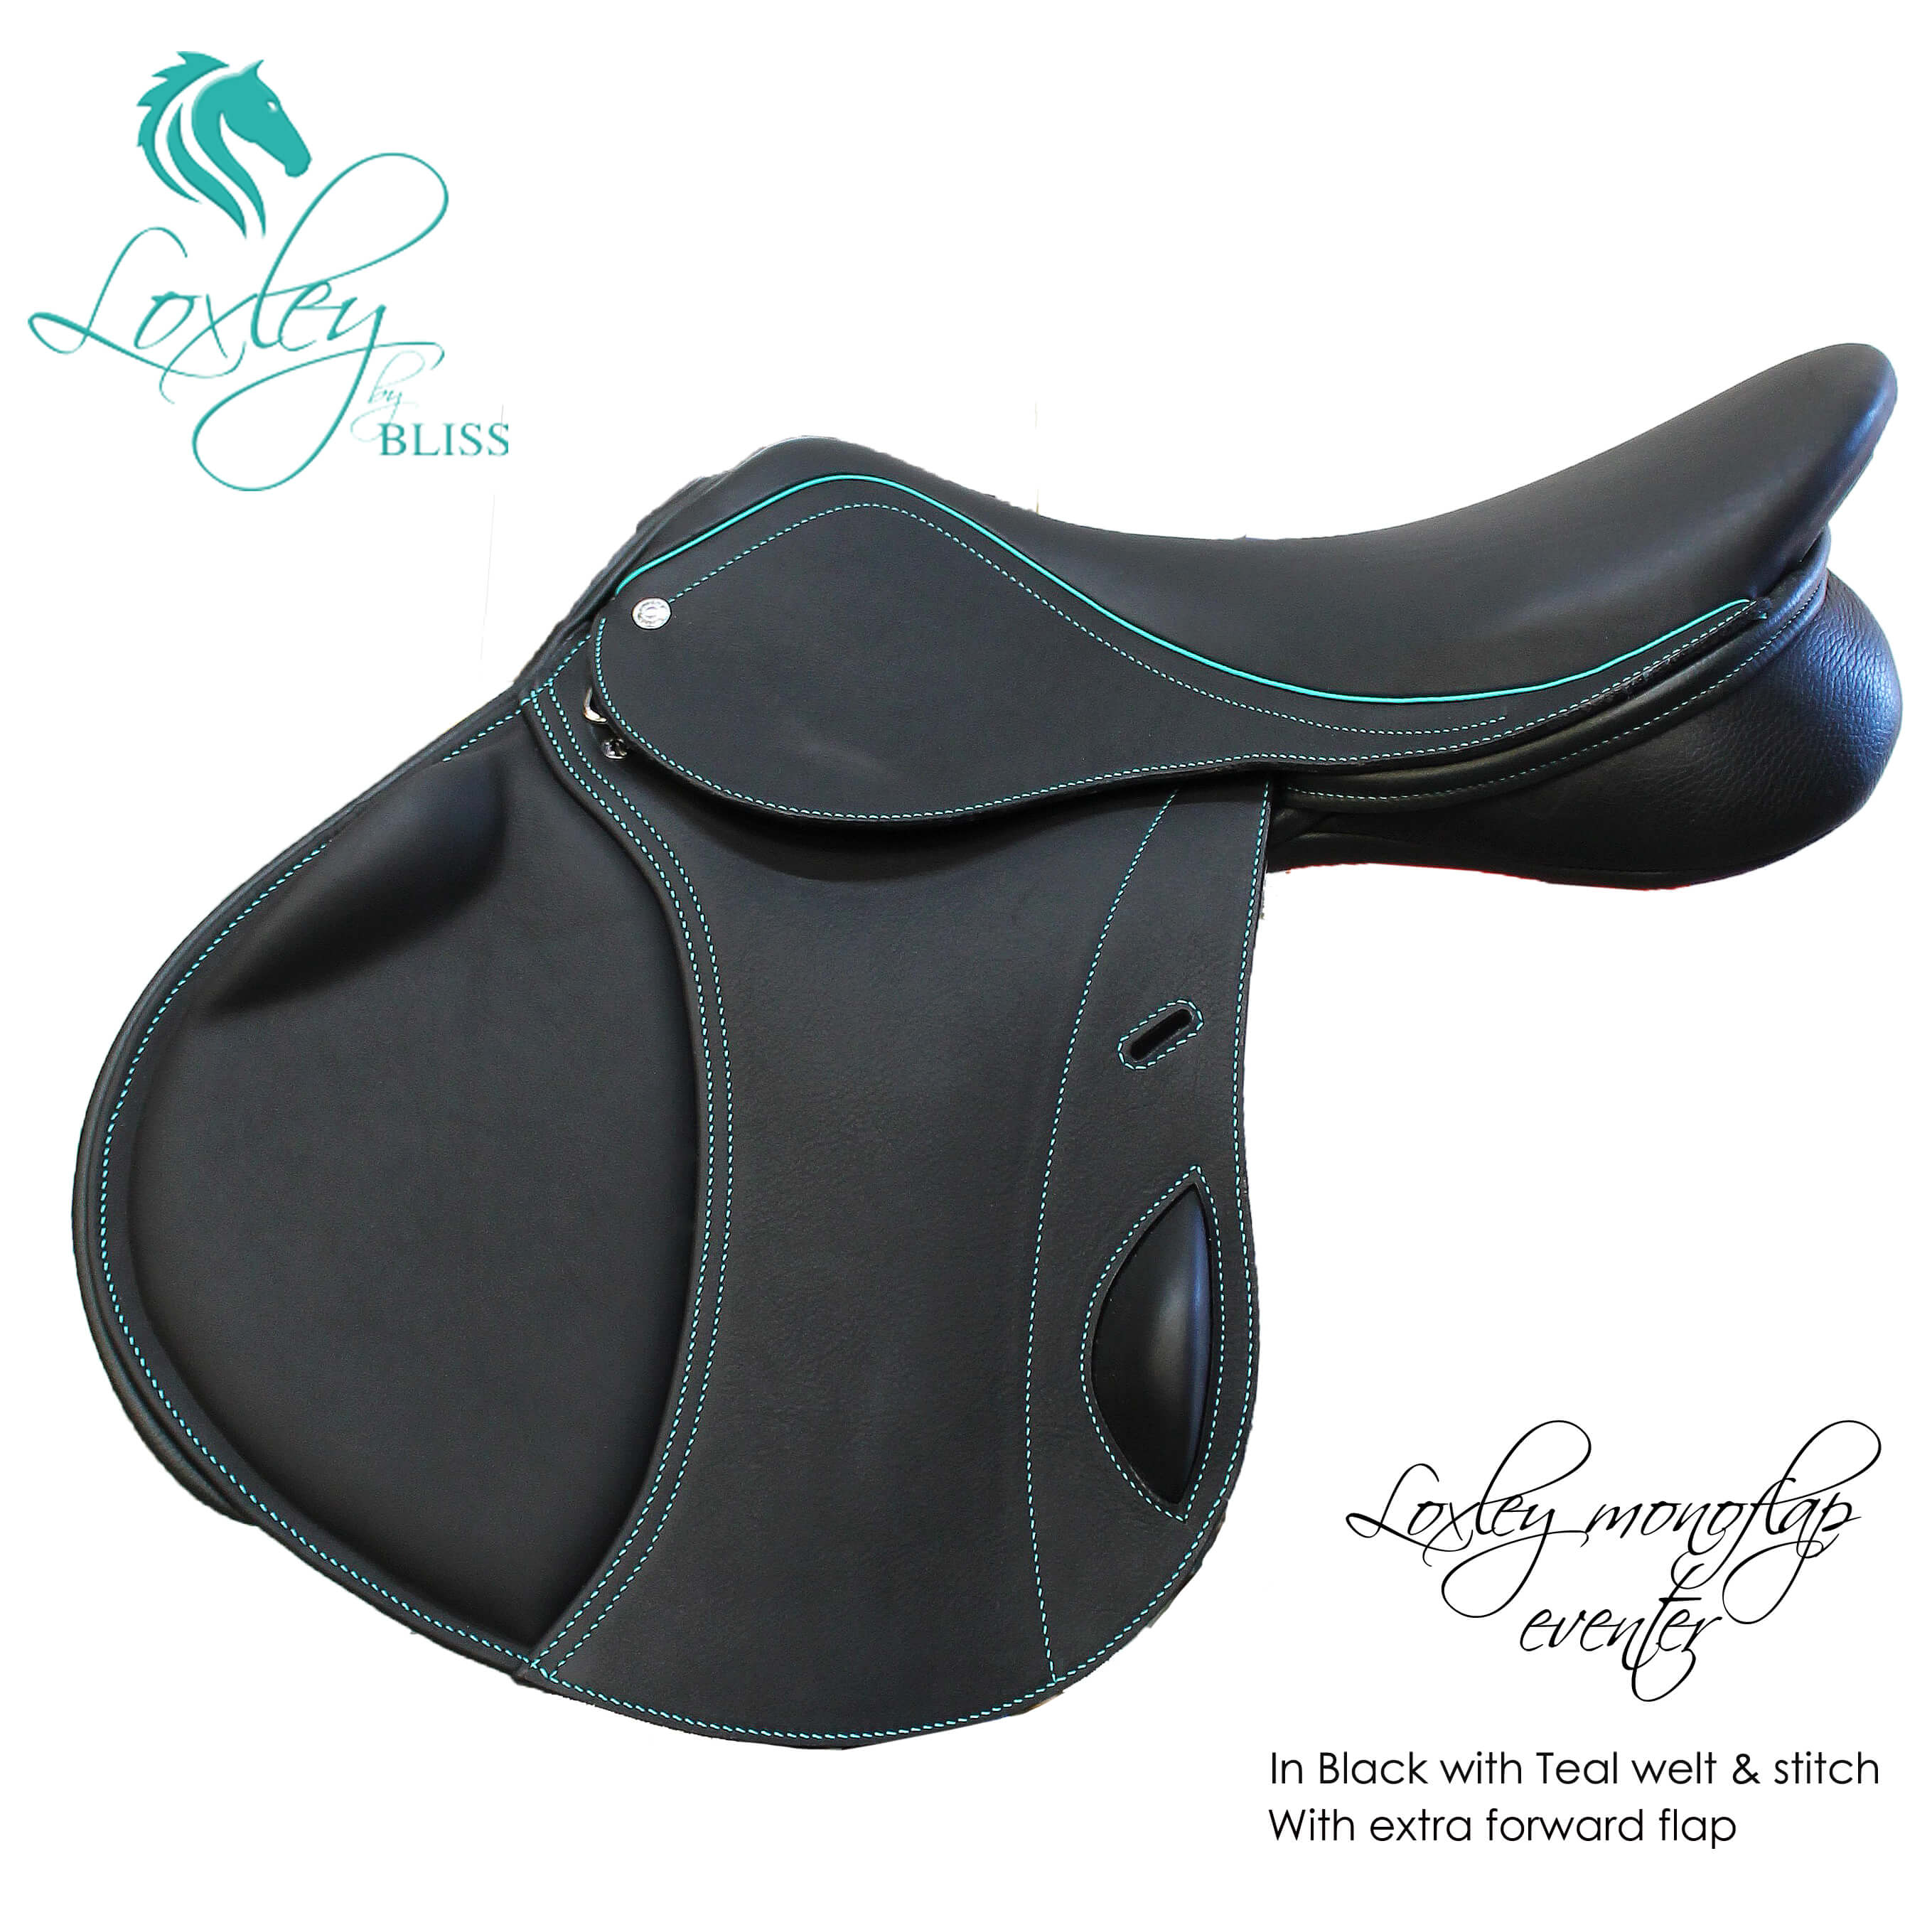 1AA Loxley Eventer Mono Black & teal copy